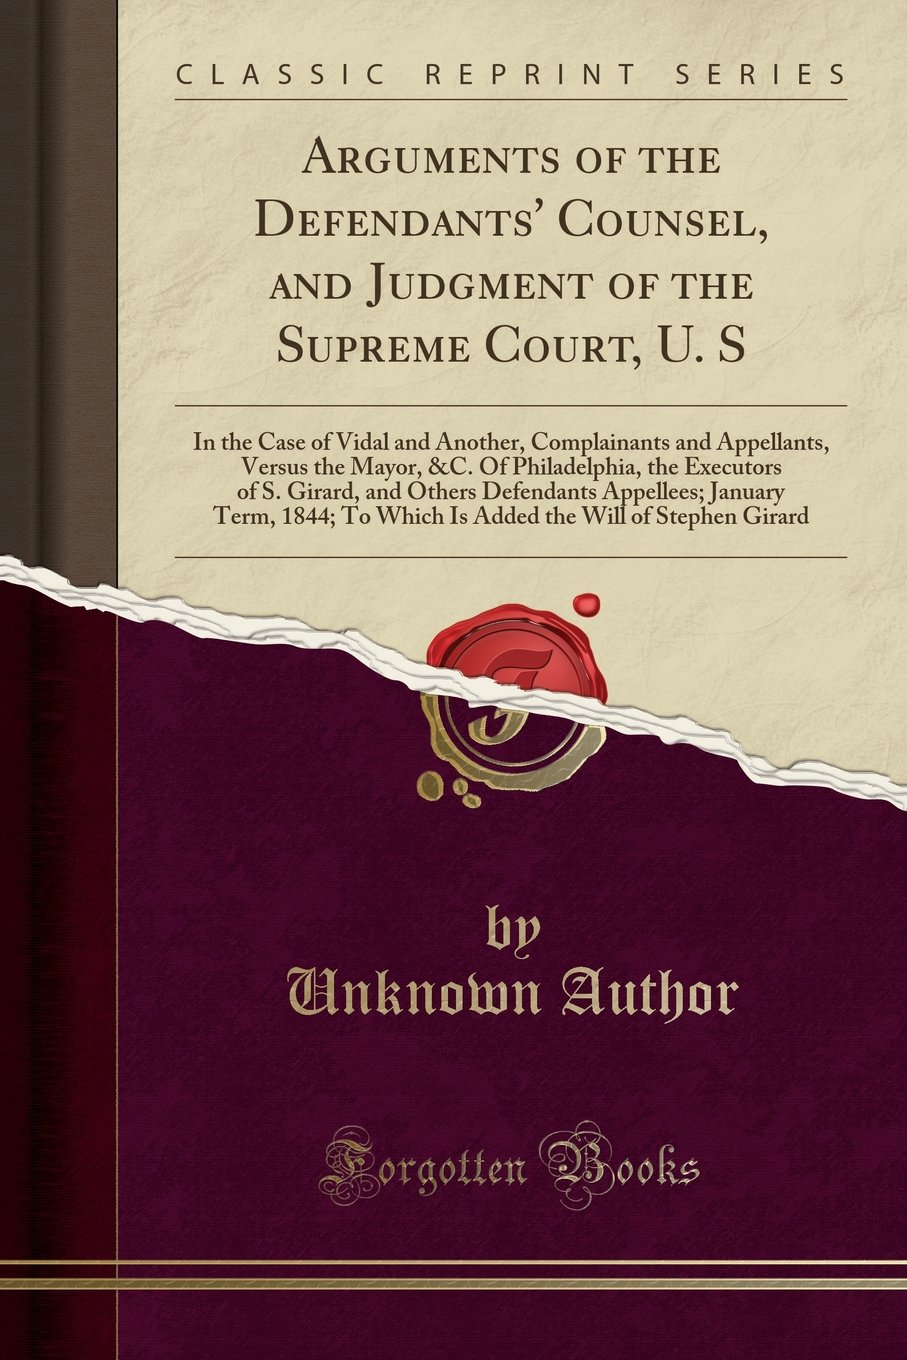 Download Arguments of the Defendants' Counsel, and Judgment of the Supreme Court, U. S: In the Case of Vidal and Another, Complainants and Appellants, Versus ... Others Defendants Appellees; January Term, pdf epub